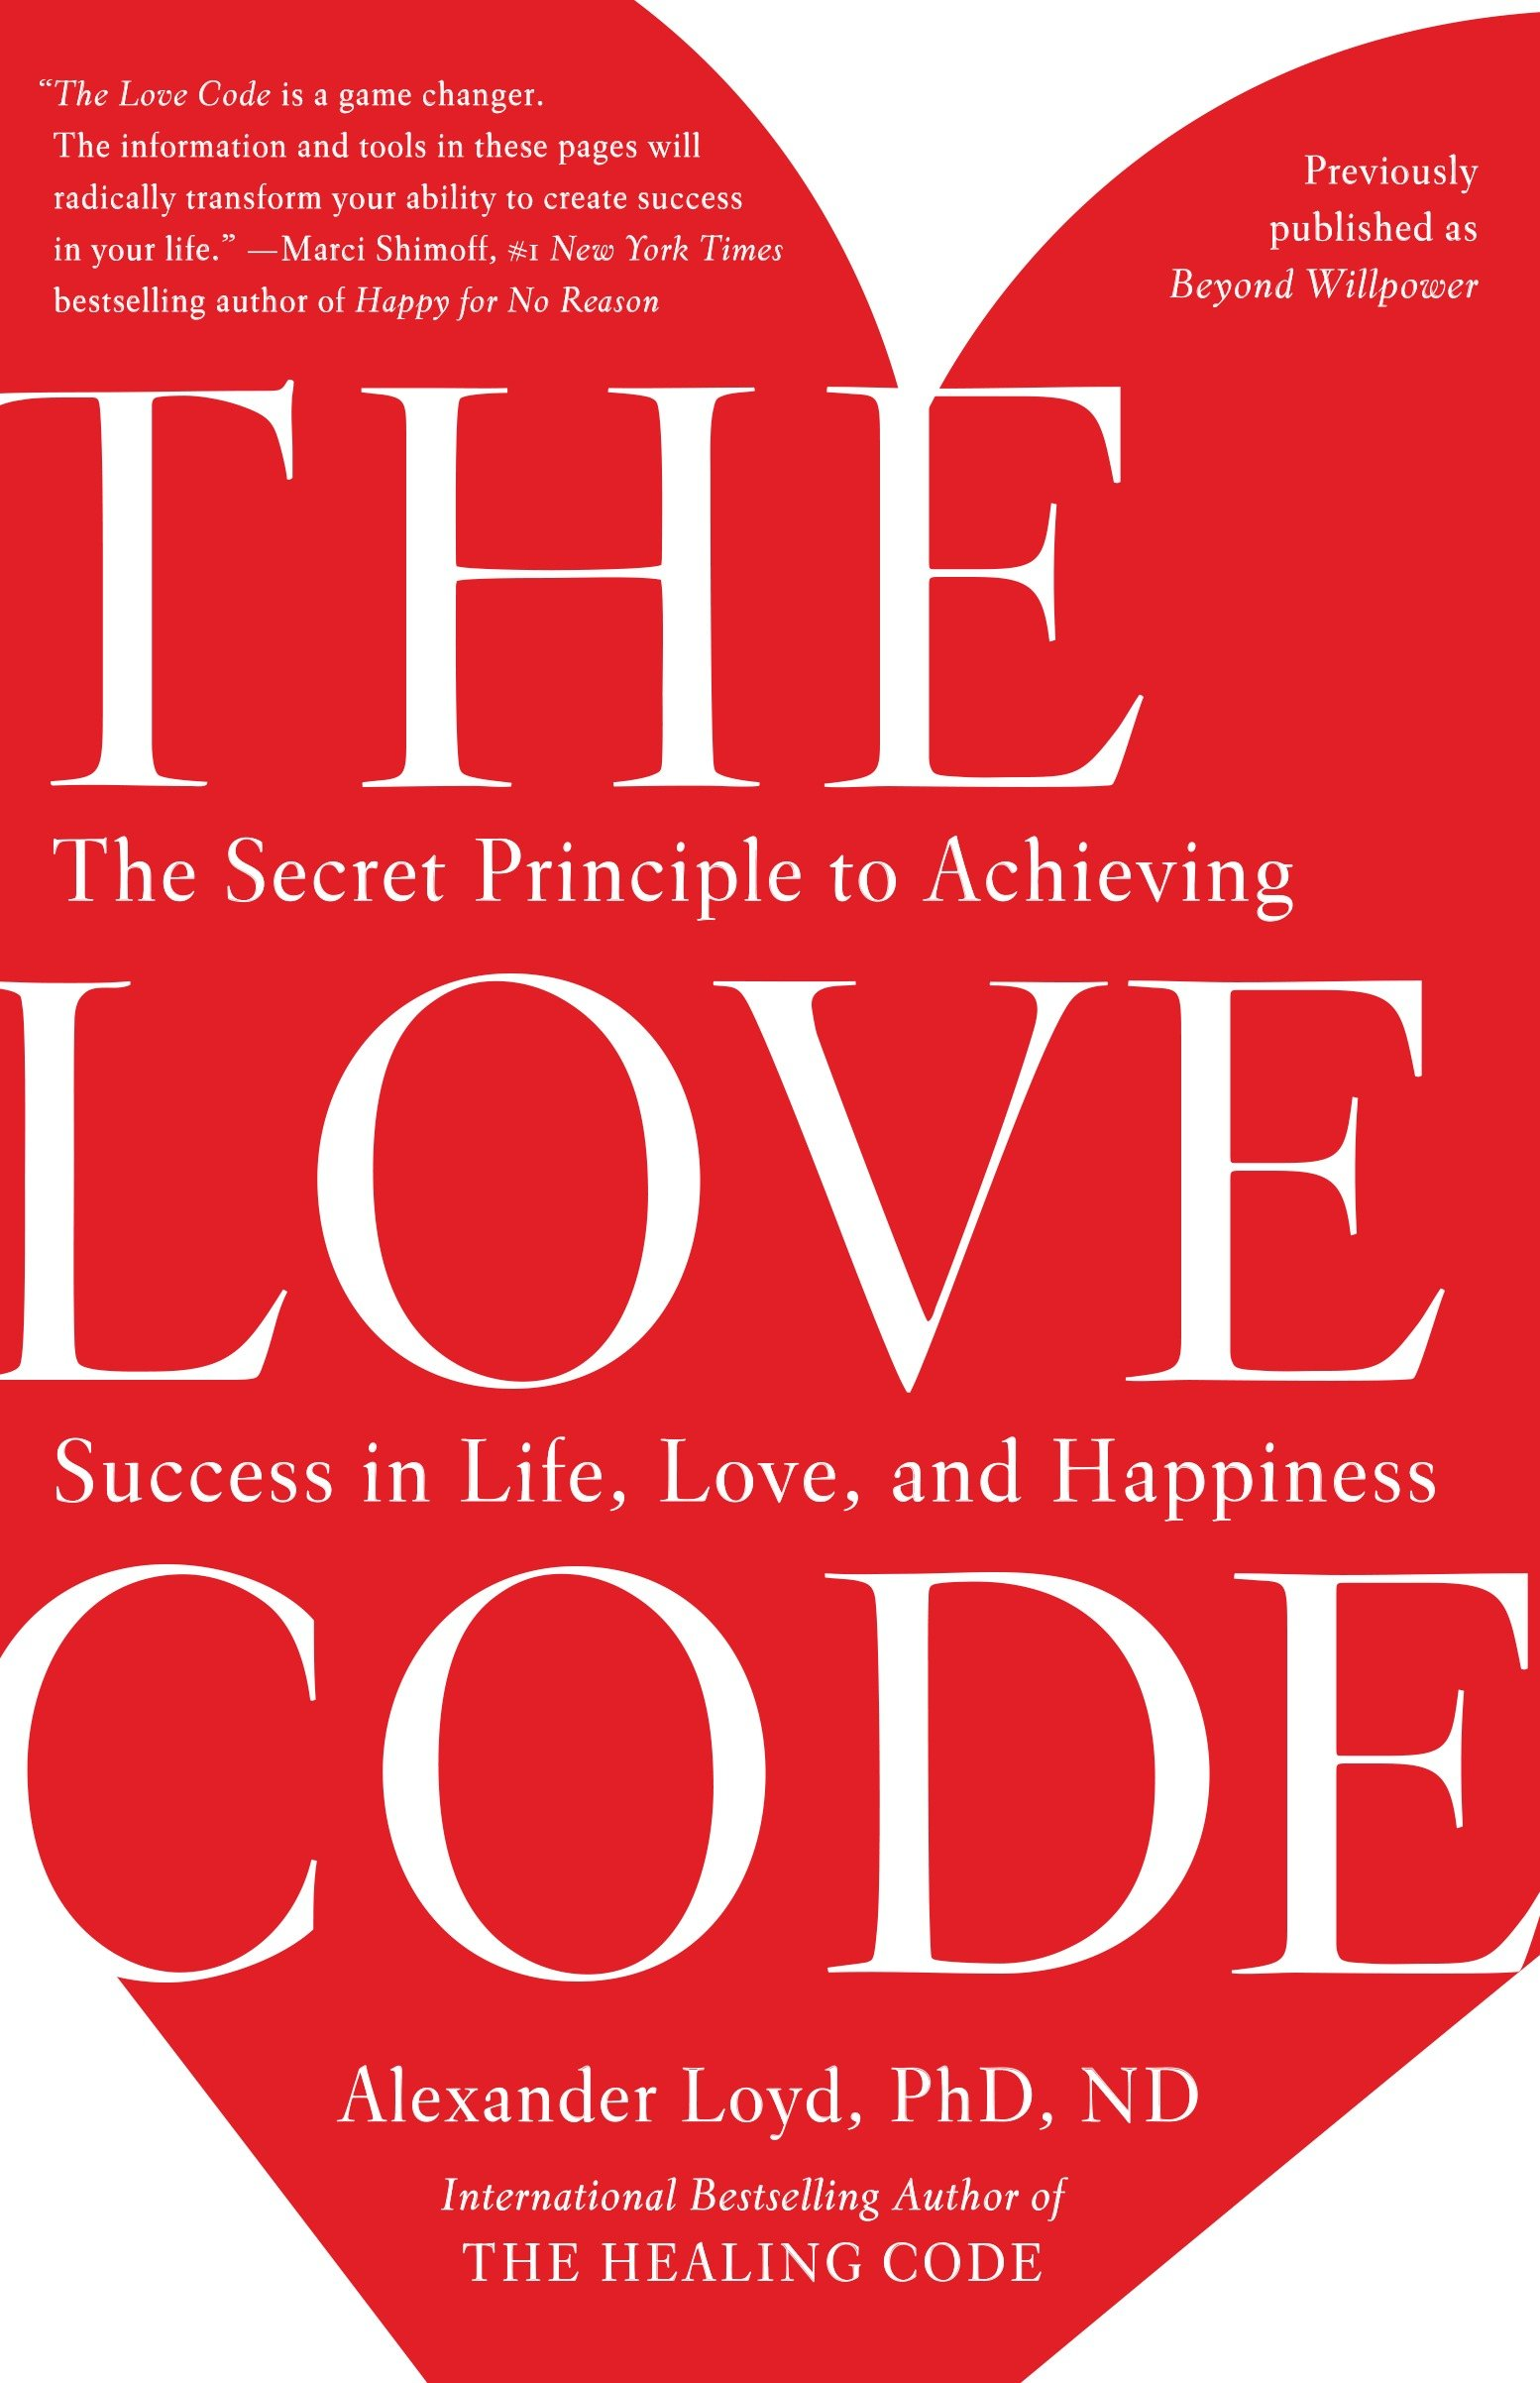 The Love Code The Secret Principle to Achieving Success in Life, Love, and Happiness